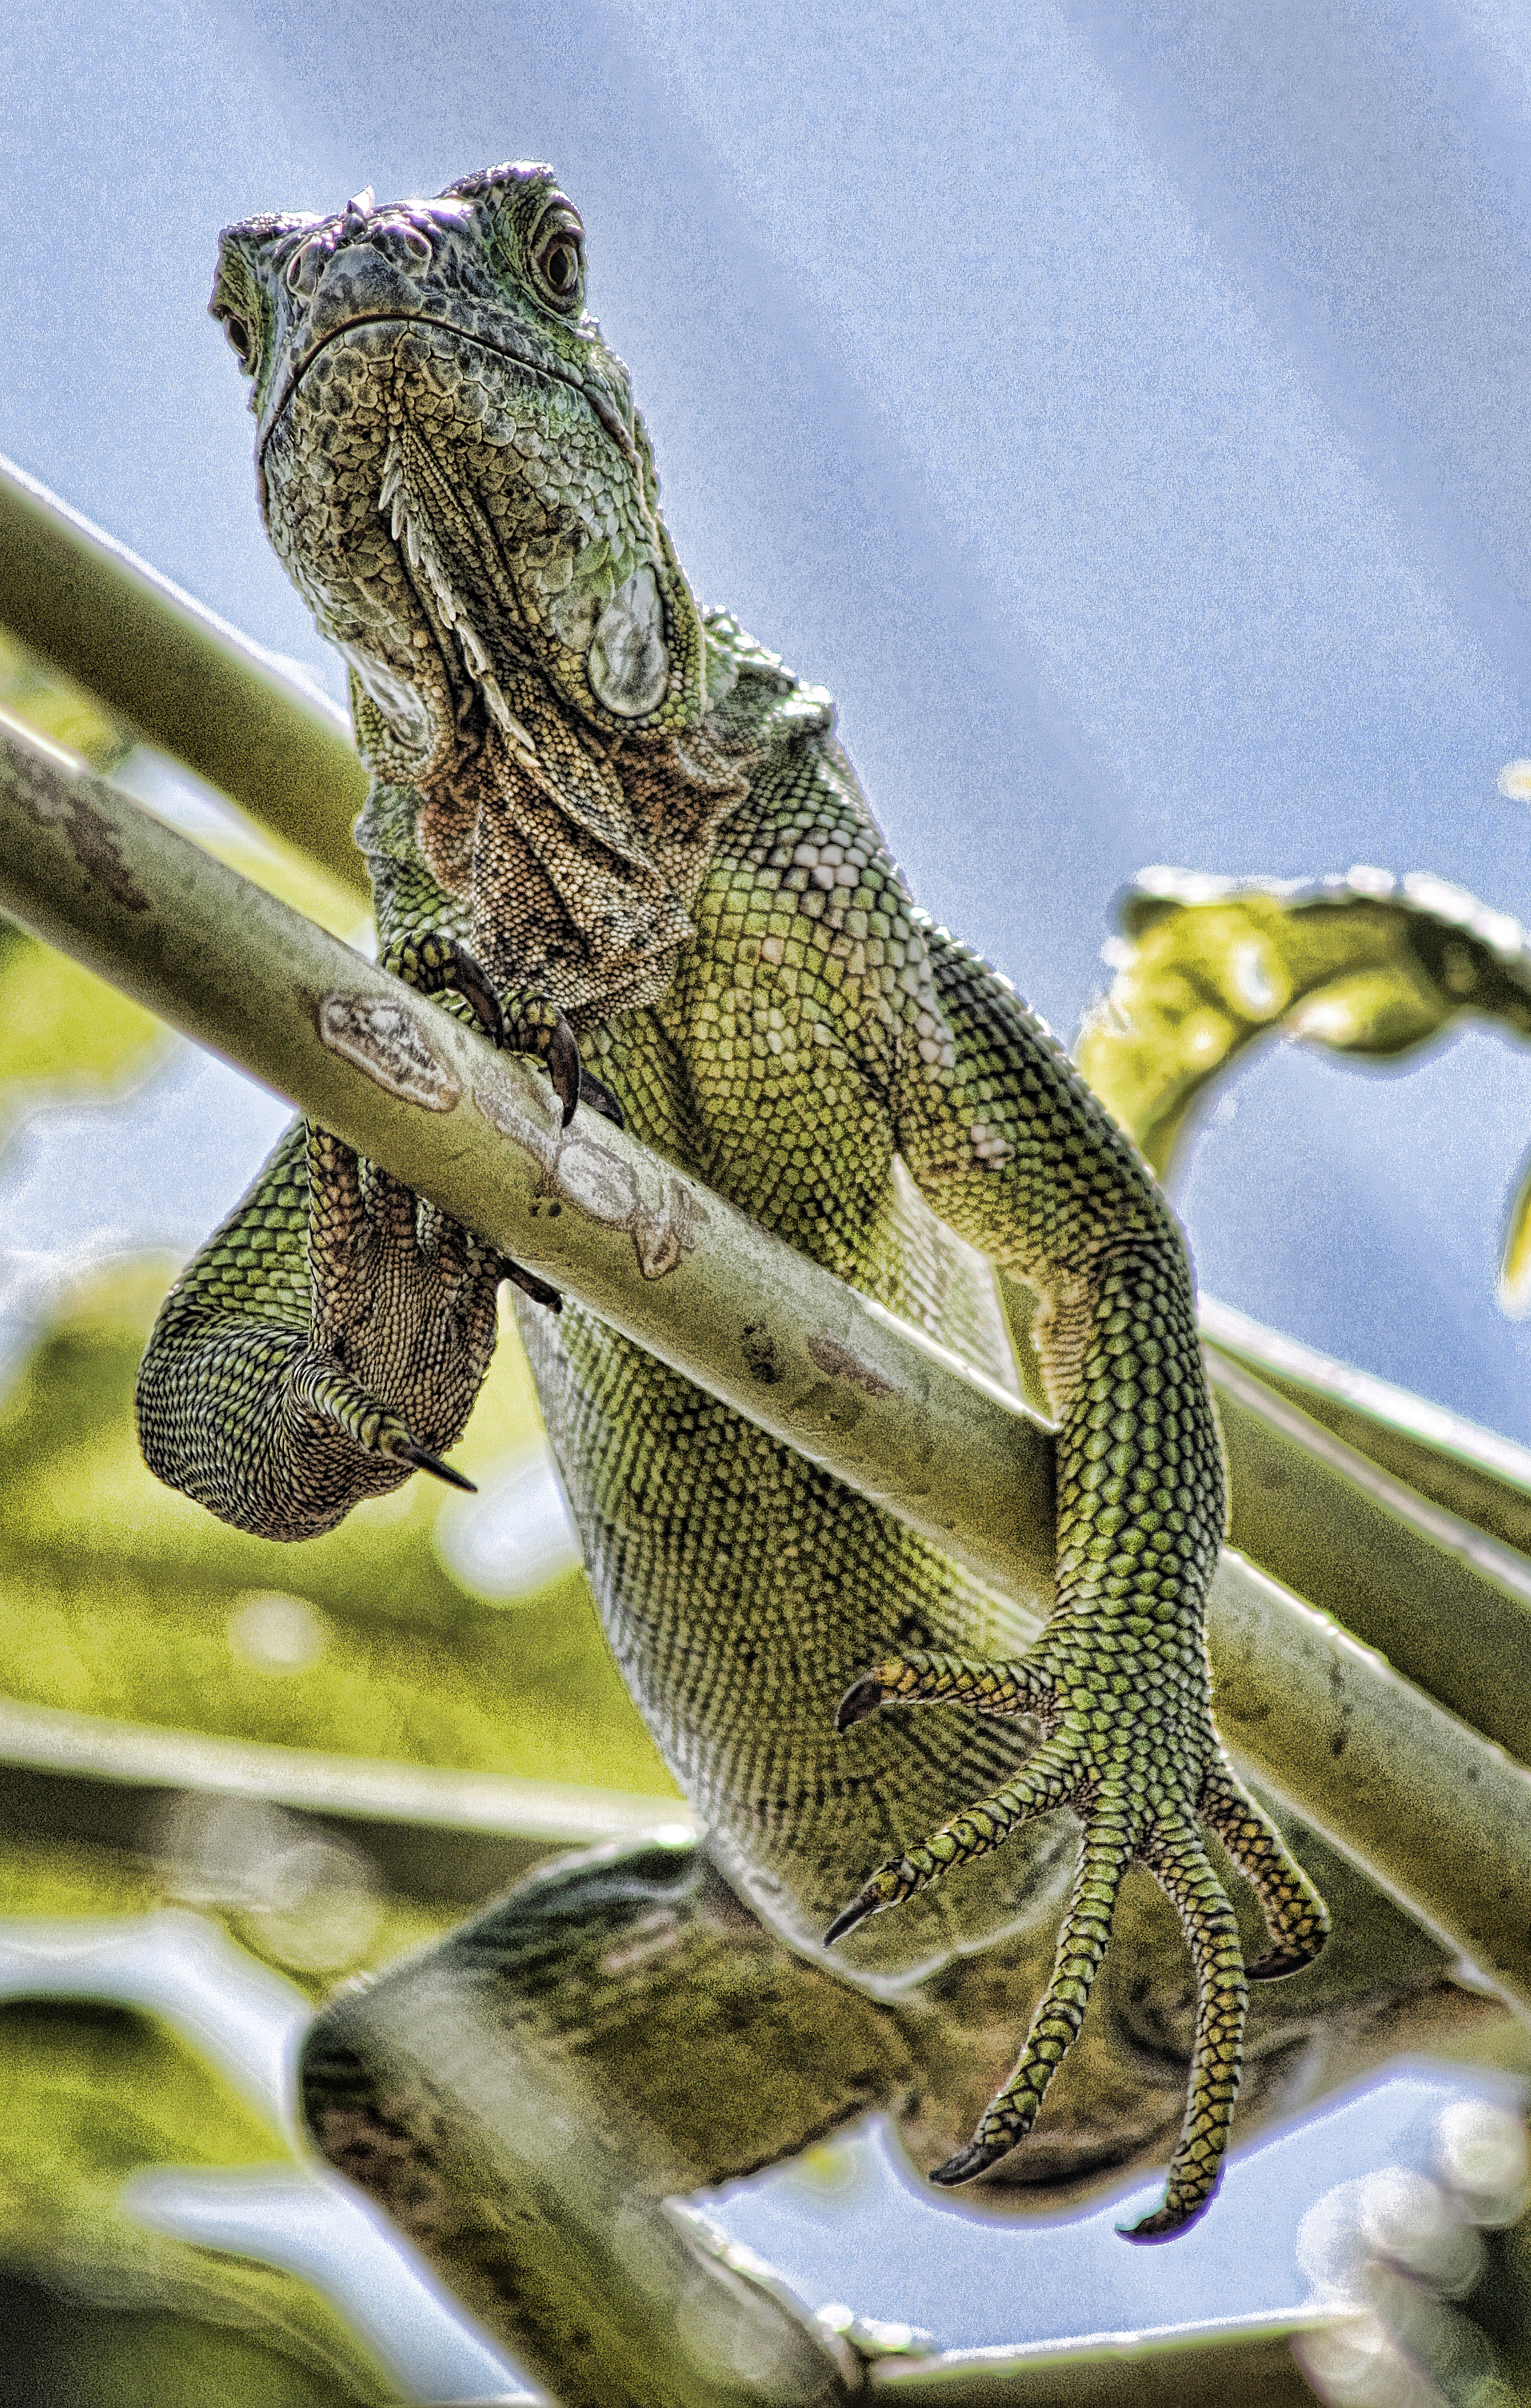 Iguana, Cayman, Lizard, Reptile, HQ Photo